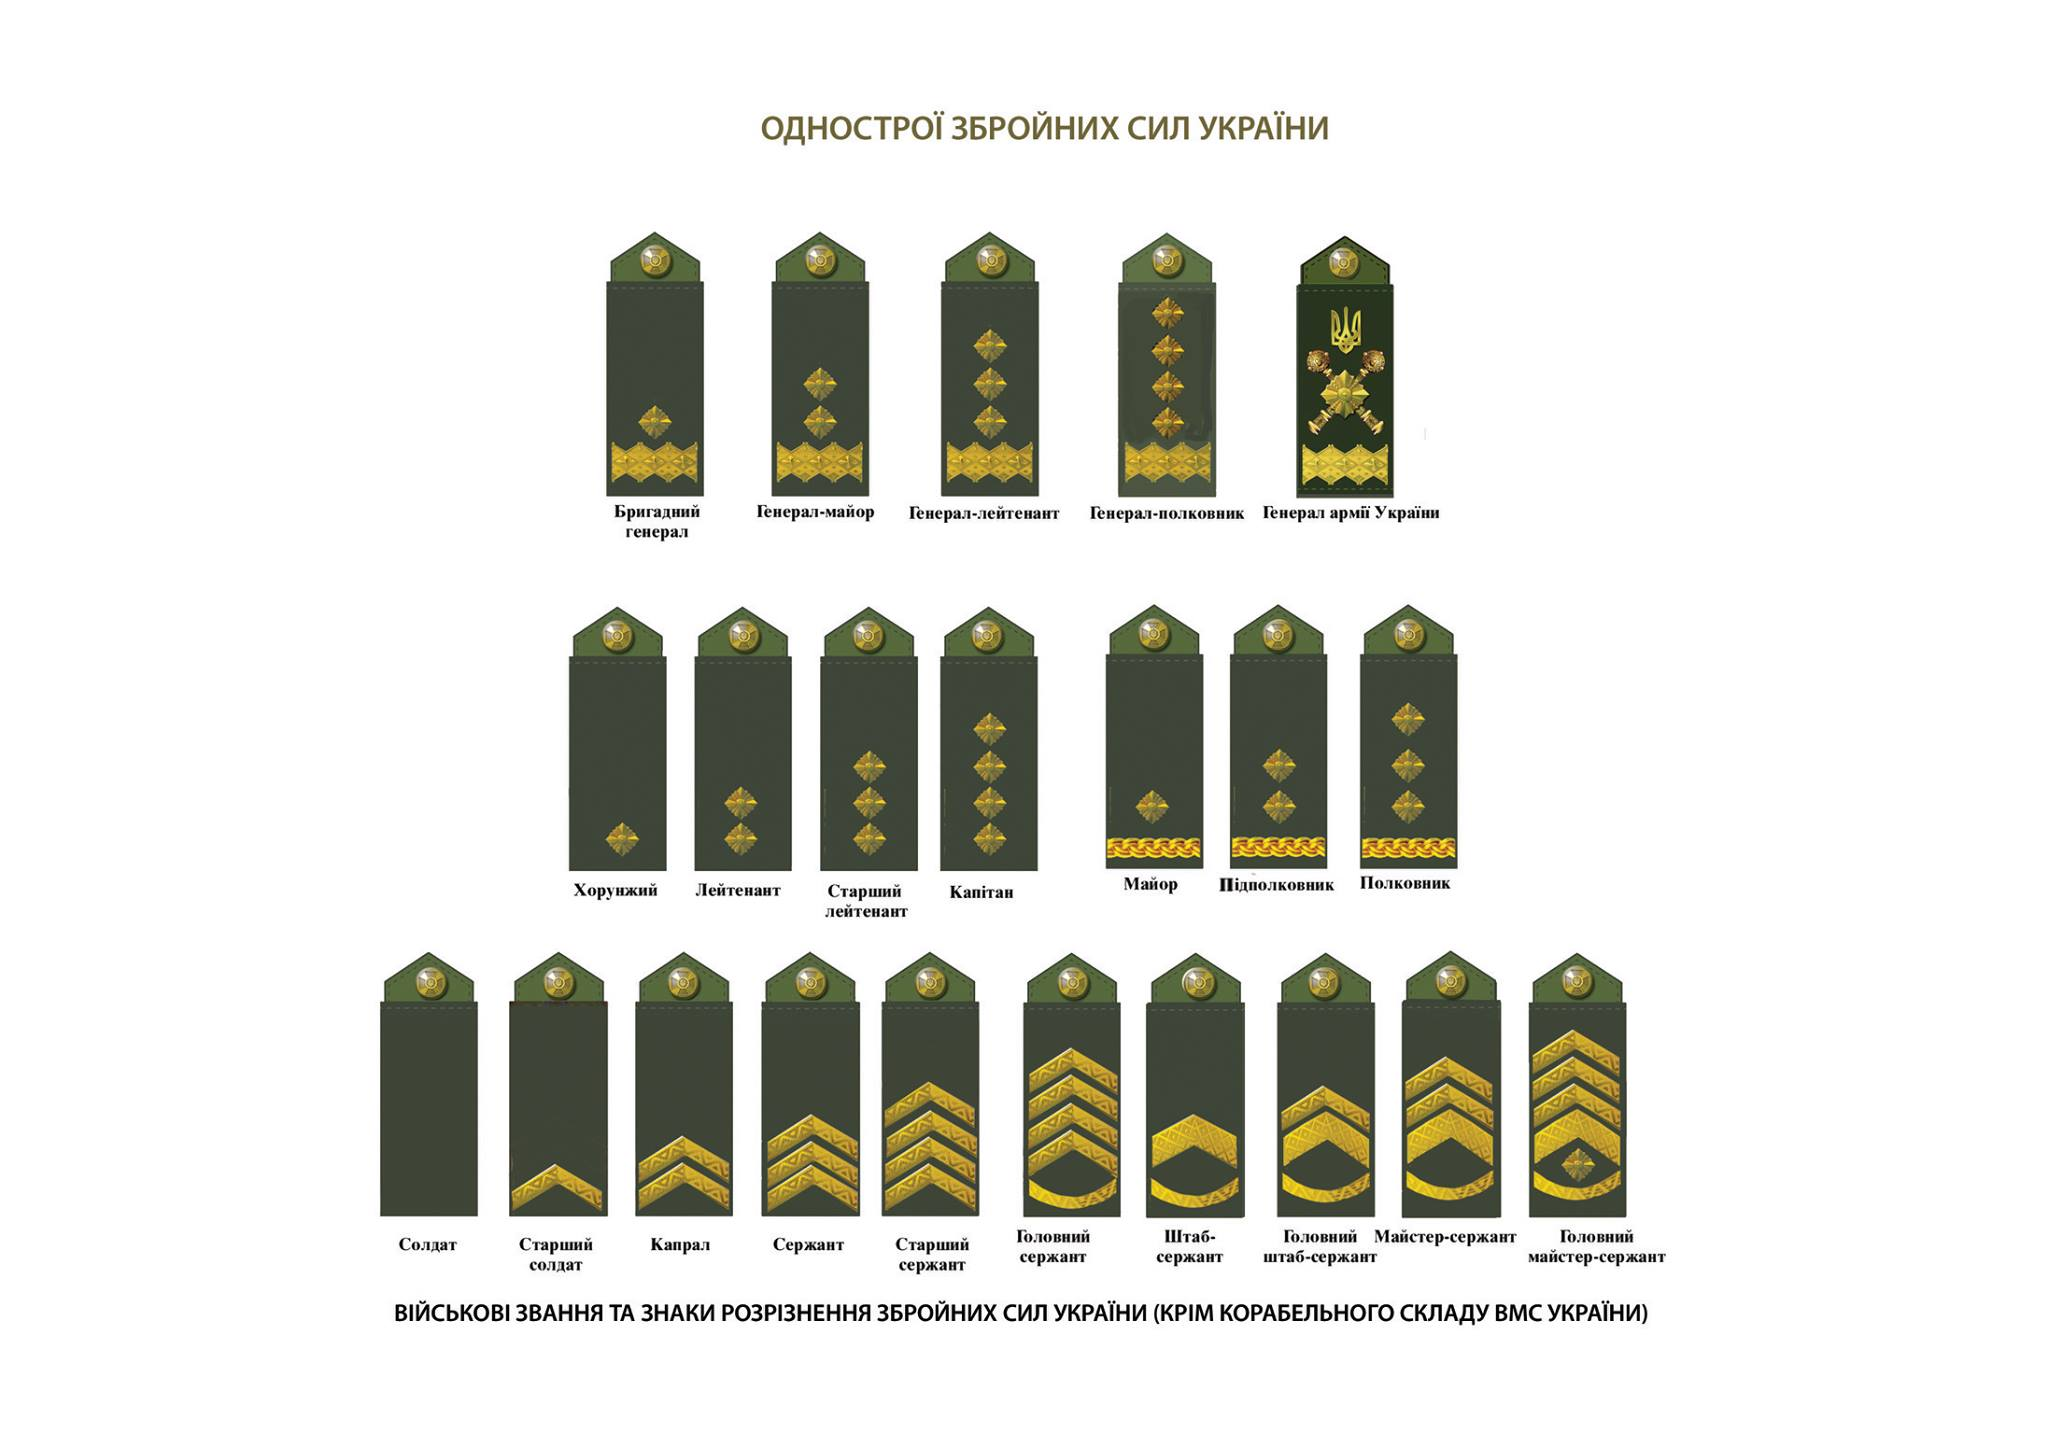 2015 Pay Chart Military: Military ranks of Ukraine 2016 (adopted).jpg - Wikimedia Commons,Chart